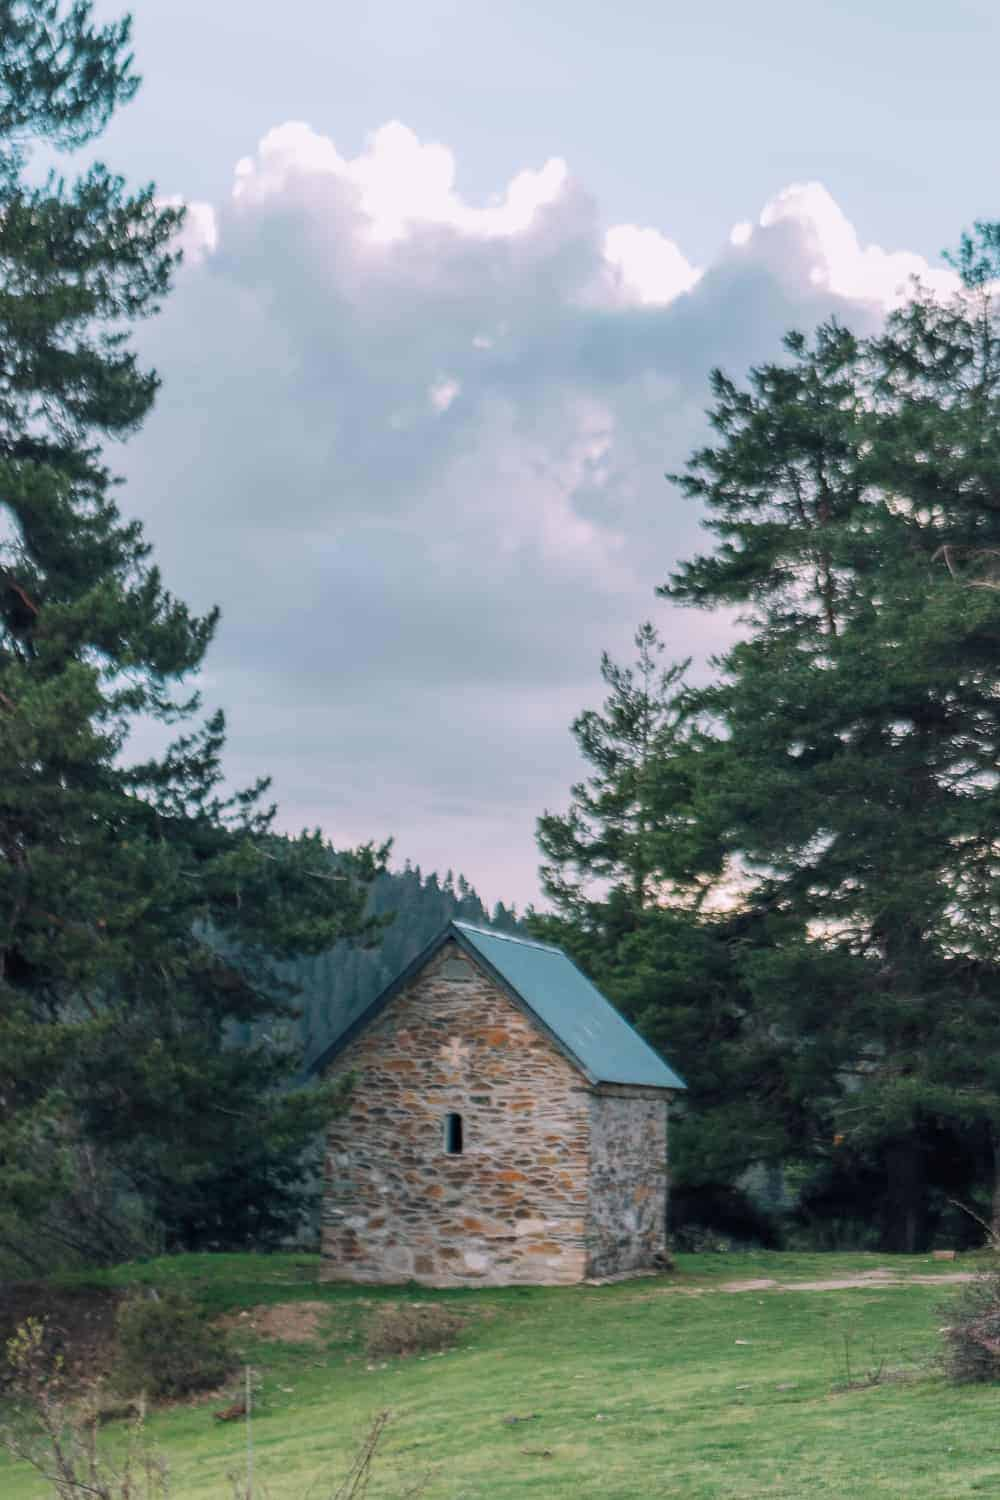 church in the middle of the mountains